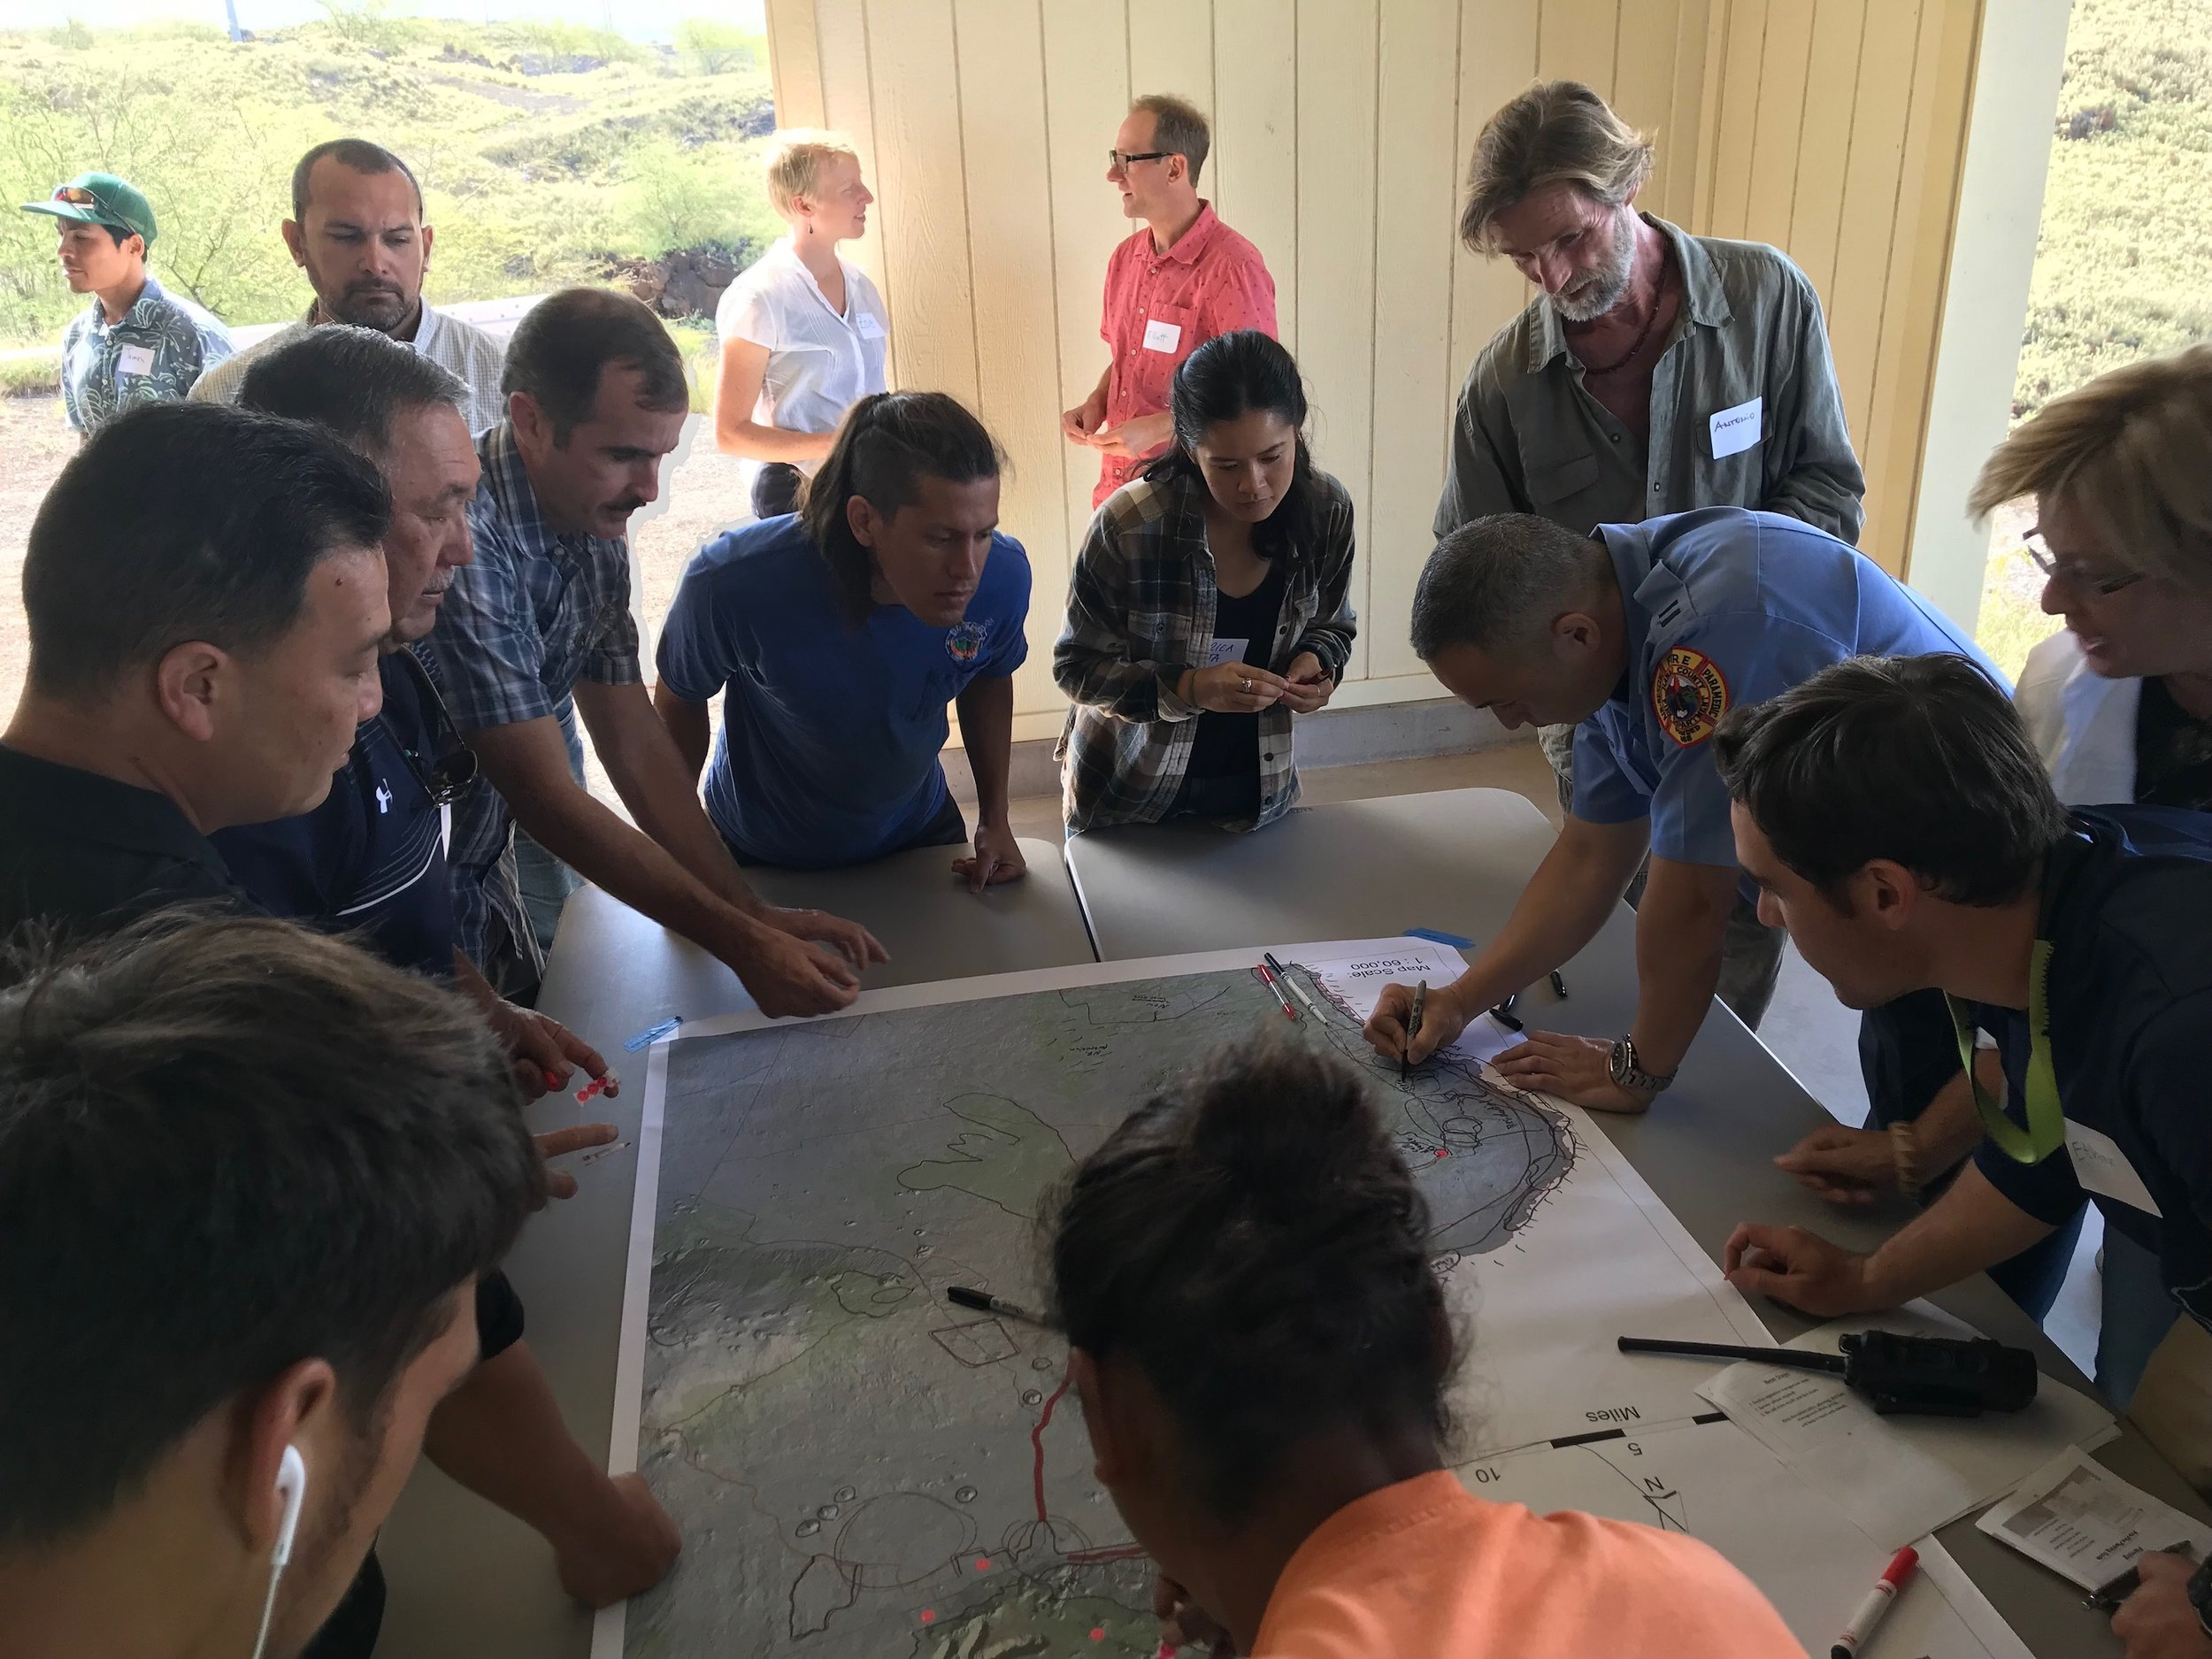 Hawaii Island Kailapa Vegetative Fuels Management Collaborative Action Planning Workshop_2_26_2019_50.jpg